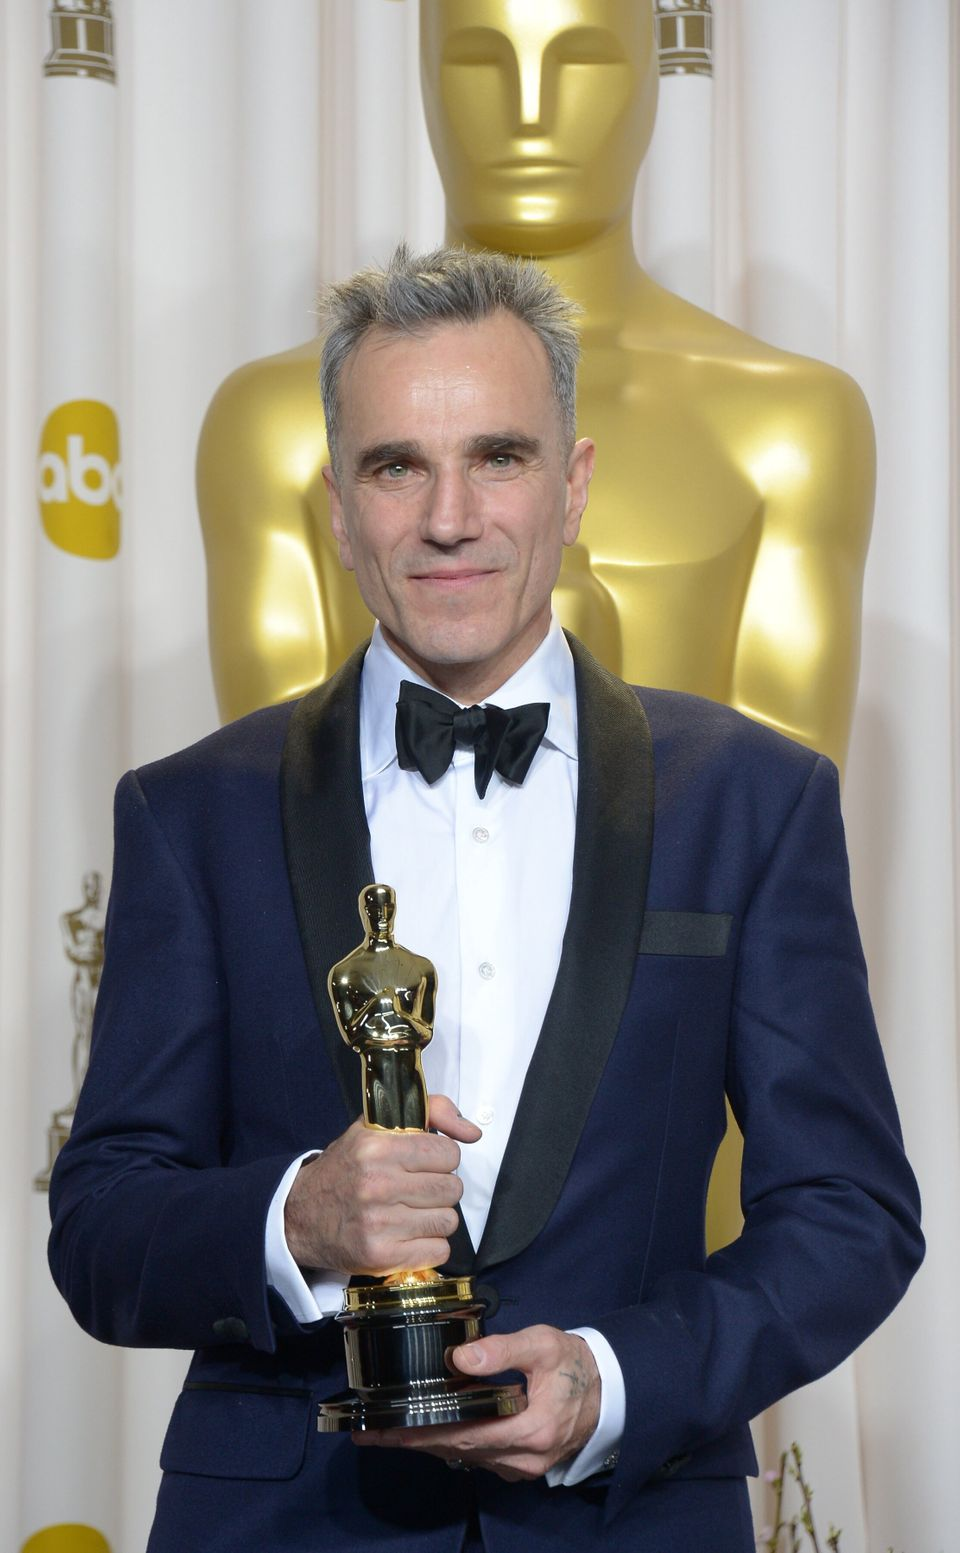 Daniel Day-Lewis holds his Best Actor Award during the 85 Academy Awards on February 24, 2013 in Hollywood, California. AFP P